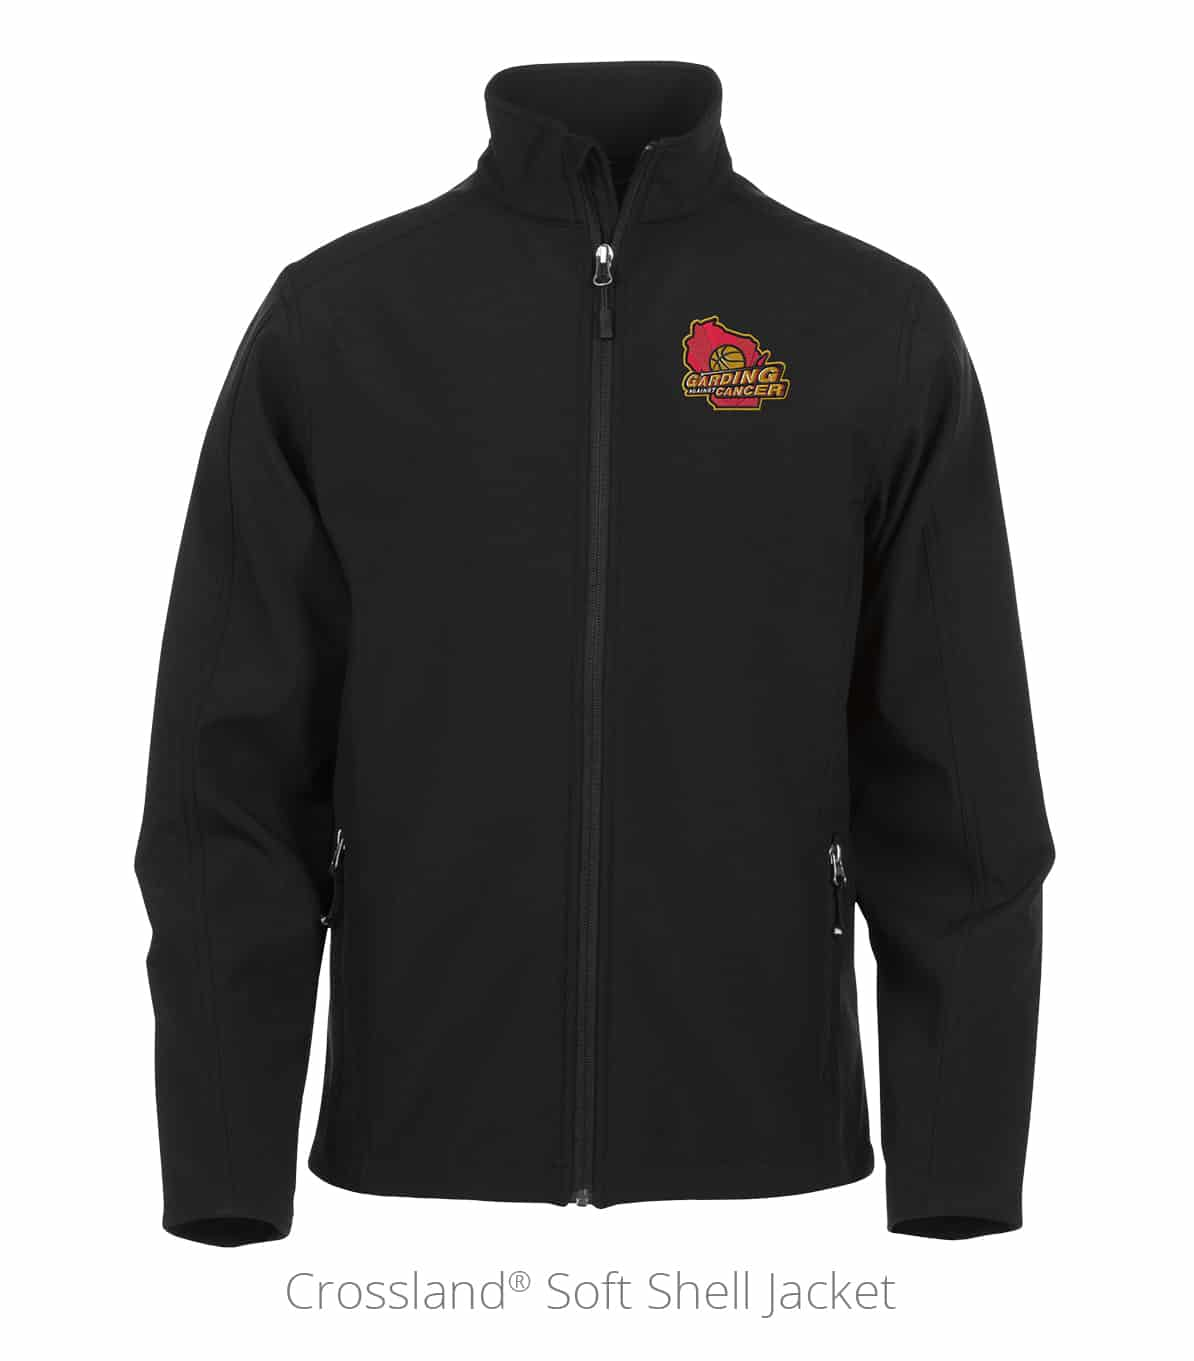 Crossland® Soft Shell Jacket used for nonprofit promotional products at events